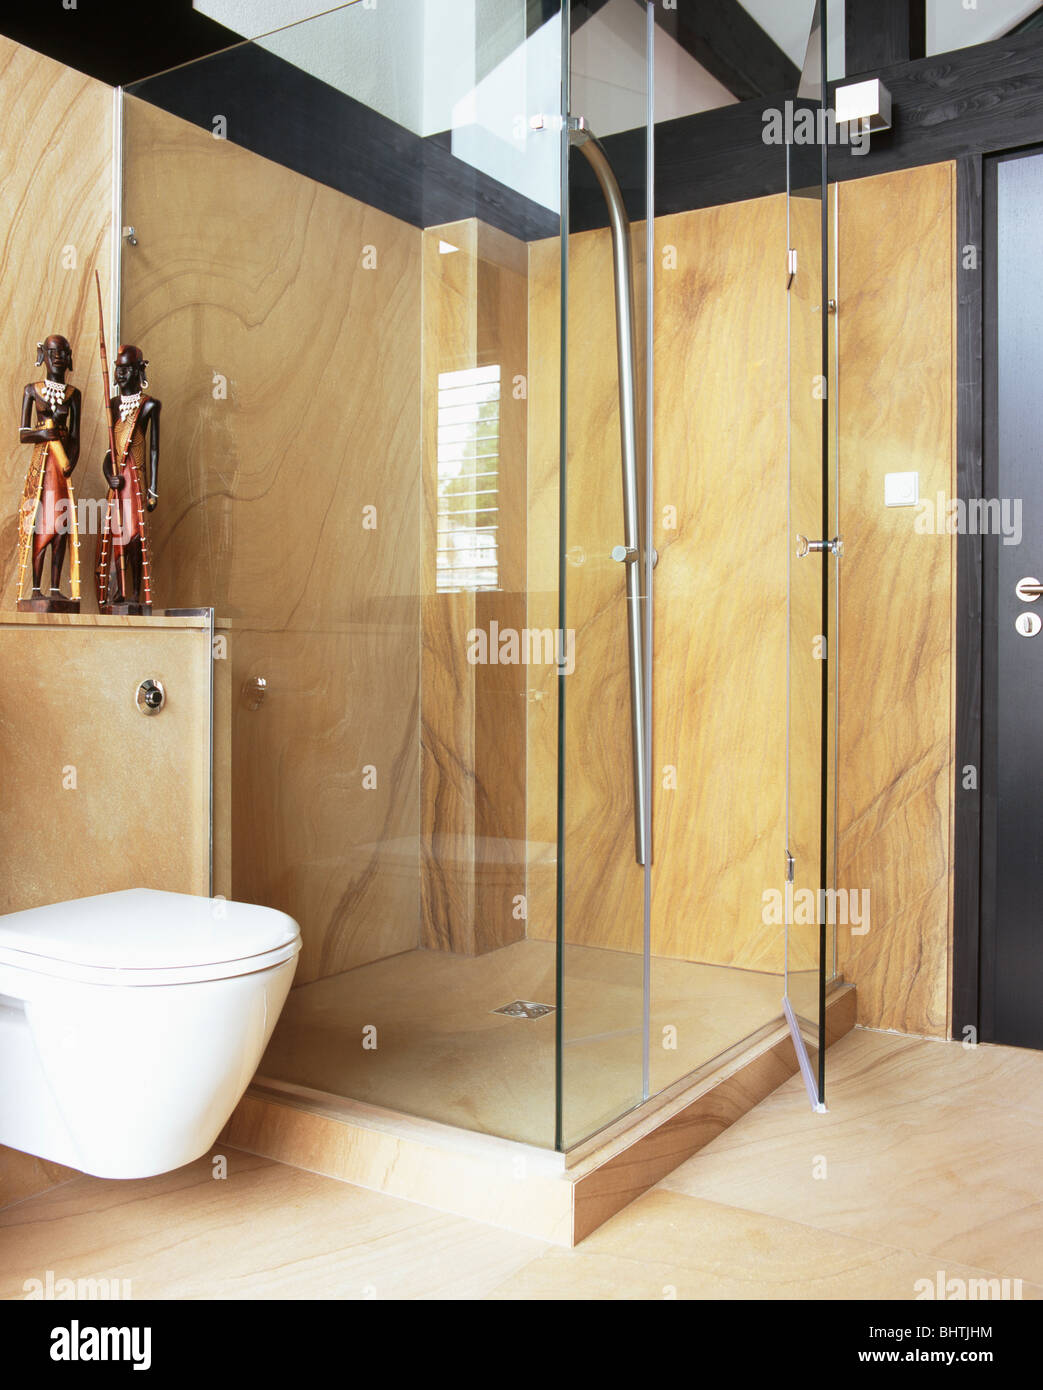 Beige Marble Walls In Glass Shower Cabinet In Modern Bathroom   Stock Image